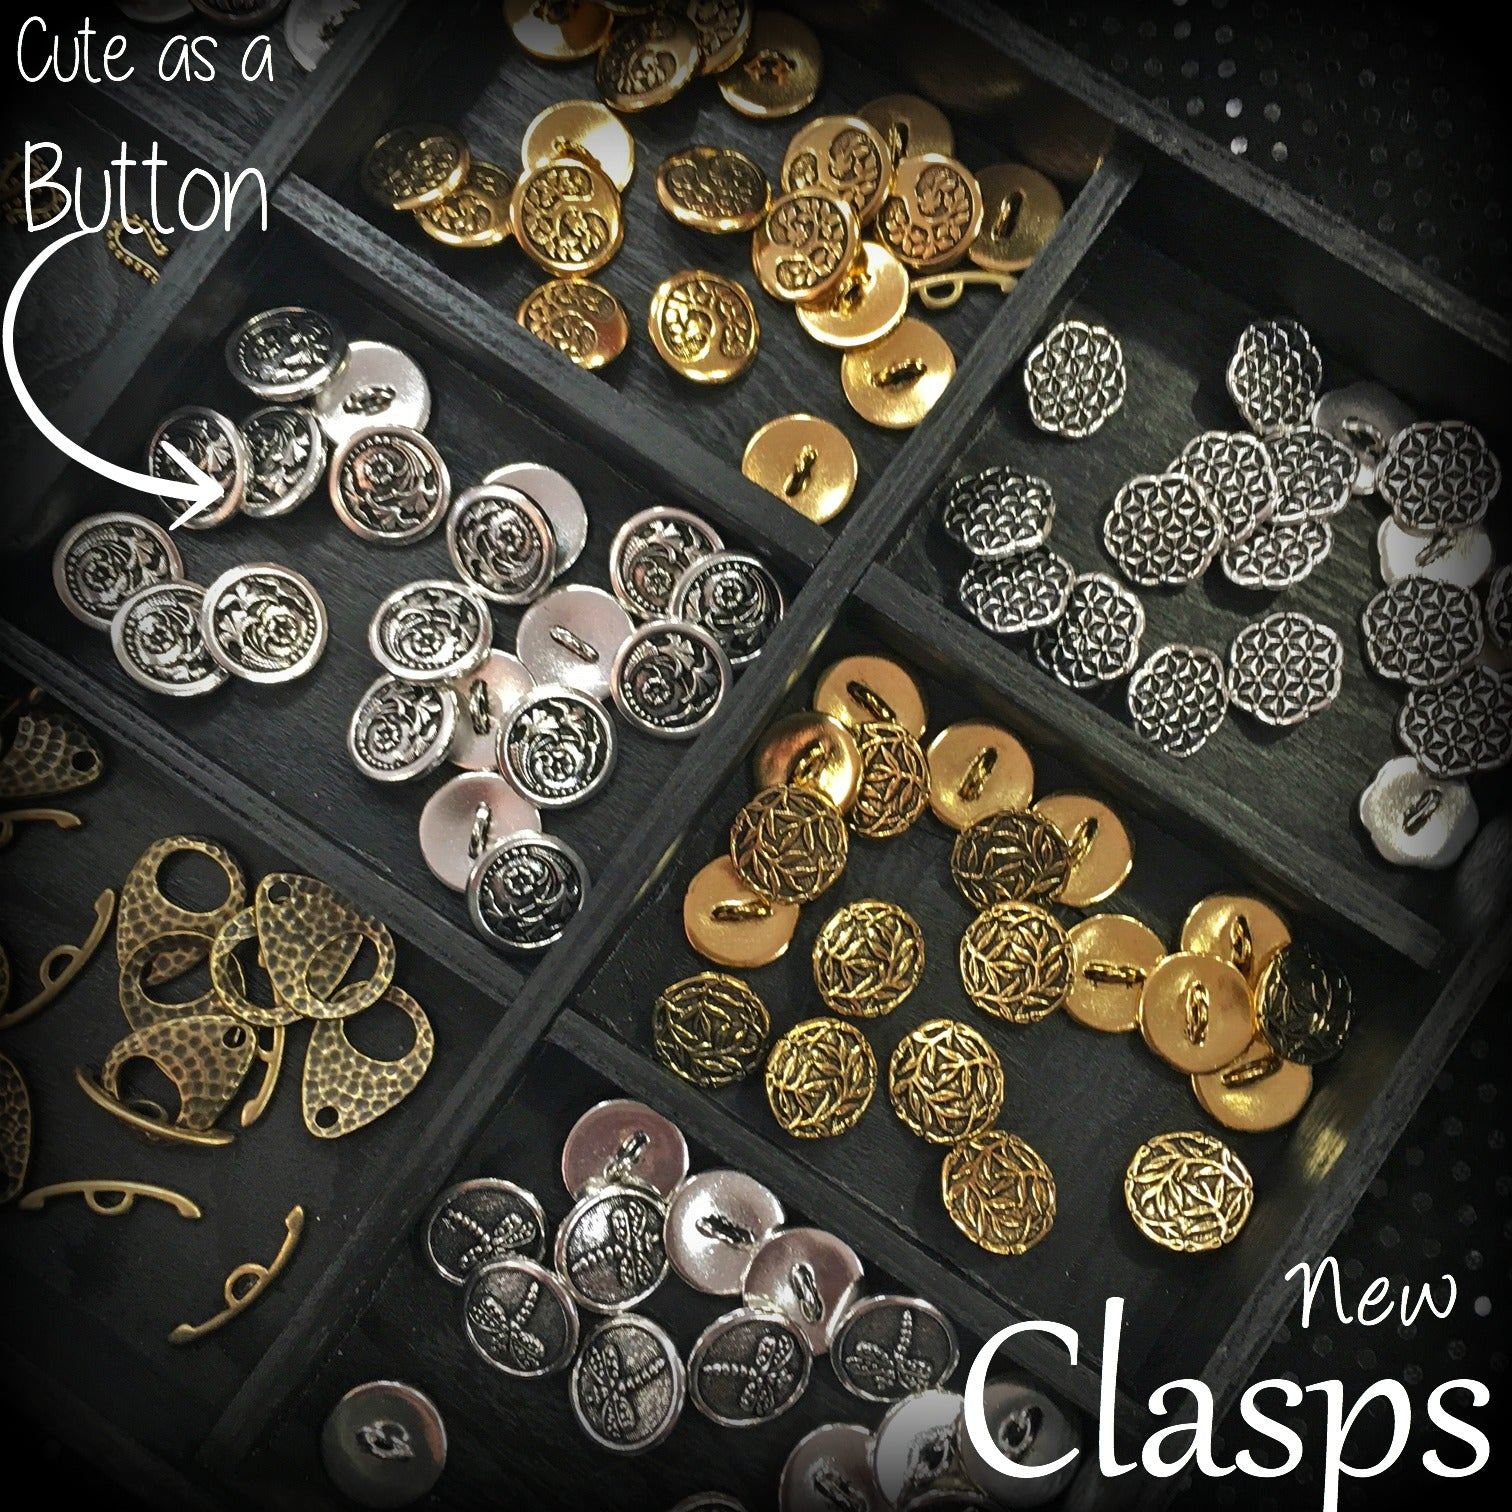 TierraCast button clasps in gold and silver metal now available at Jesse James Beads